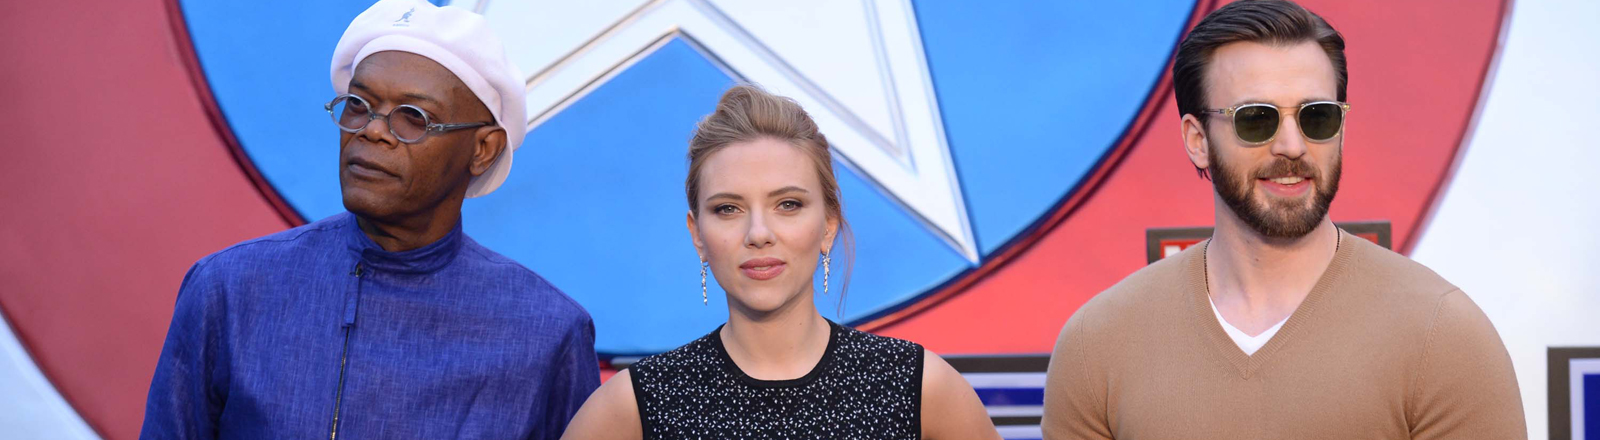 "Bei der China-Premiere von ""Captain America: The Winter Soldier"": Samuel L. Jackson, Scarlett Johansson und Chris Evans."